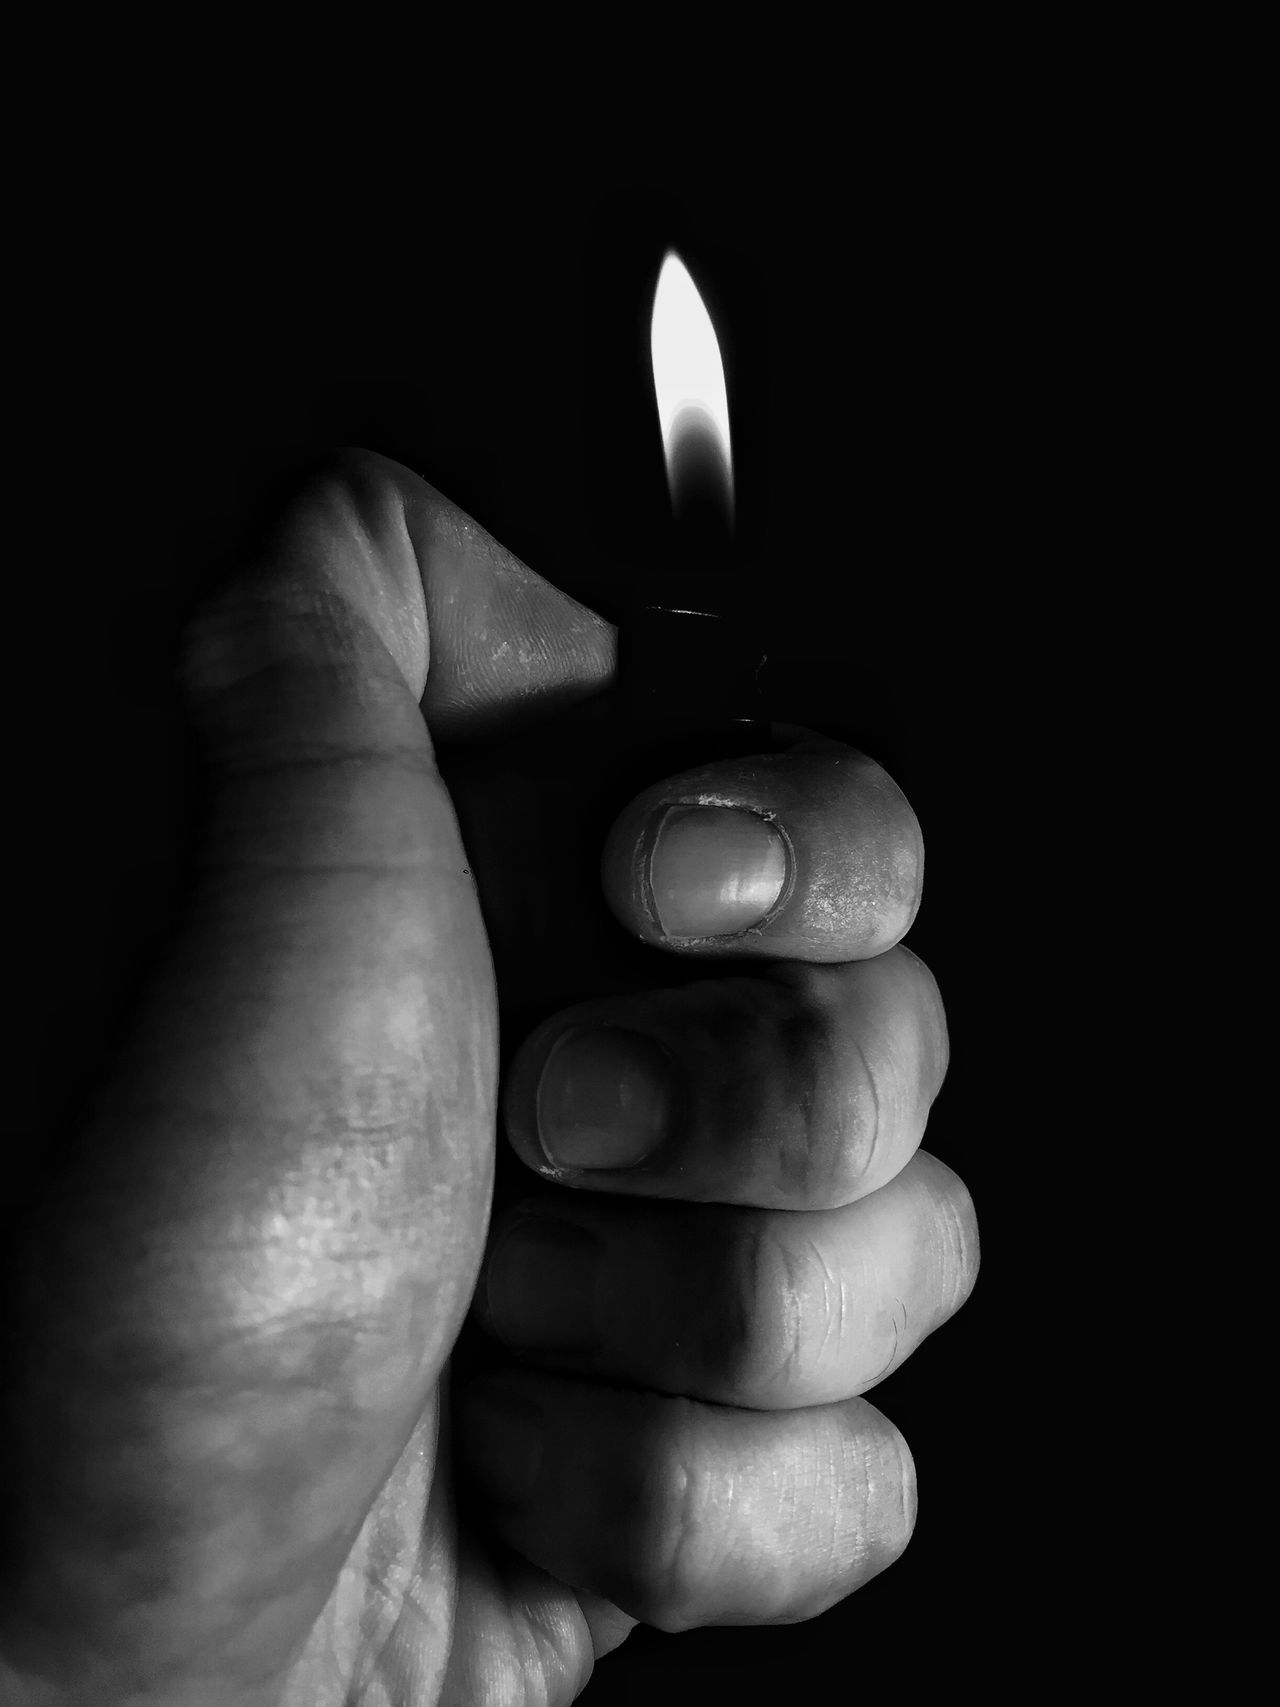 Light reflection Lighter Flame Reflection Light Shadows & Lights Hand Fingers Human Hand Human Body Part Burning Flame One Person Close-up Holding Indoors  Black Background